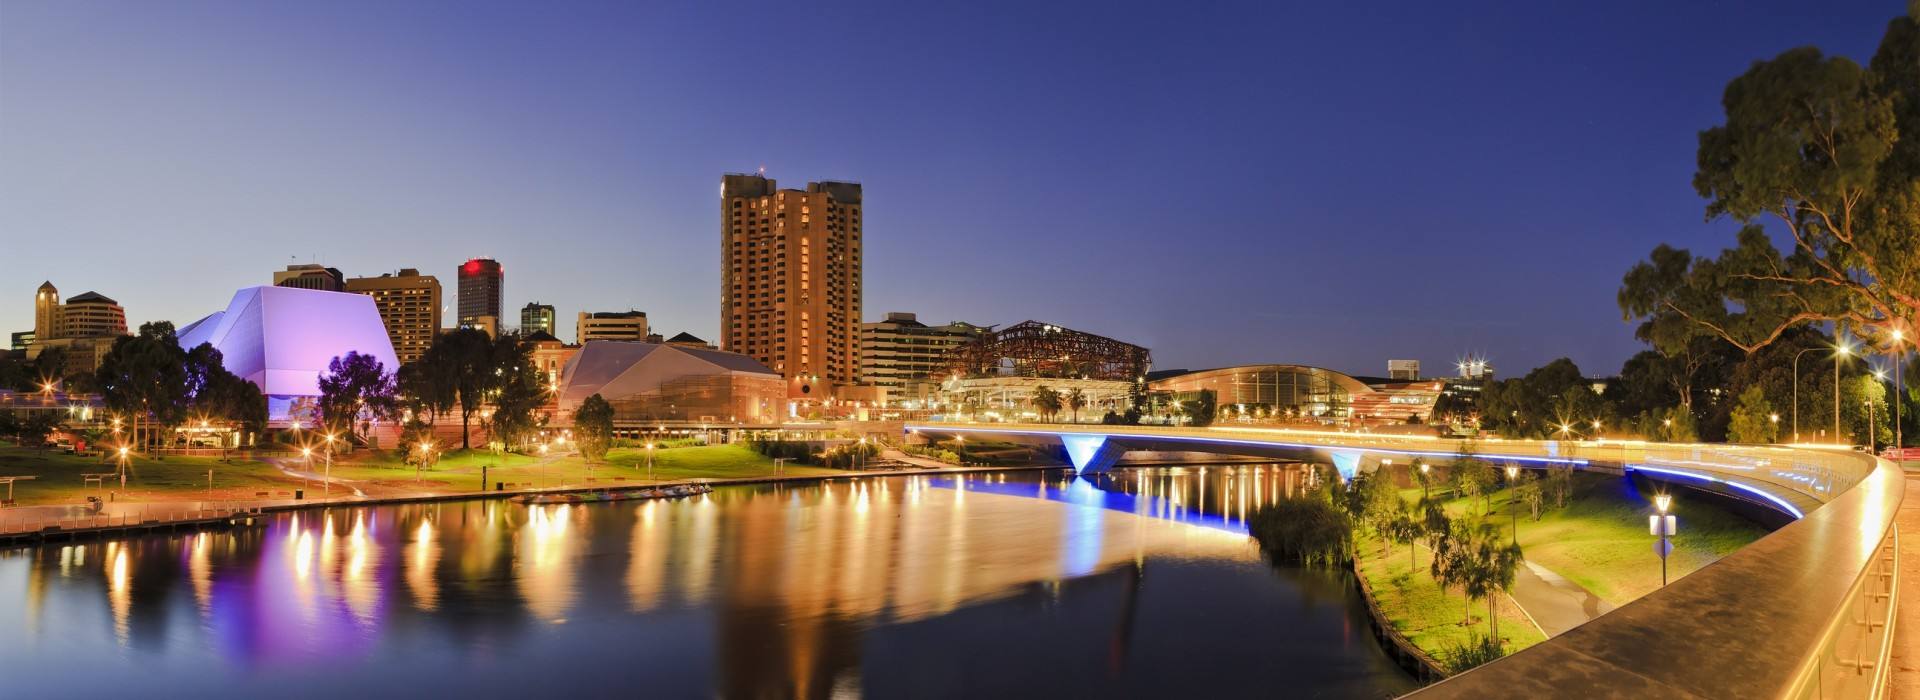 The city of Adelaide in Australia lights up at dusk.